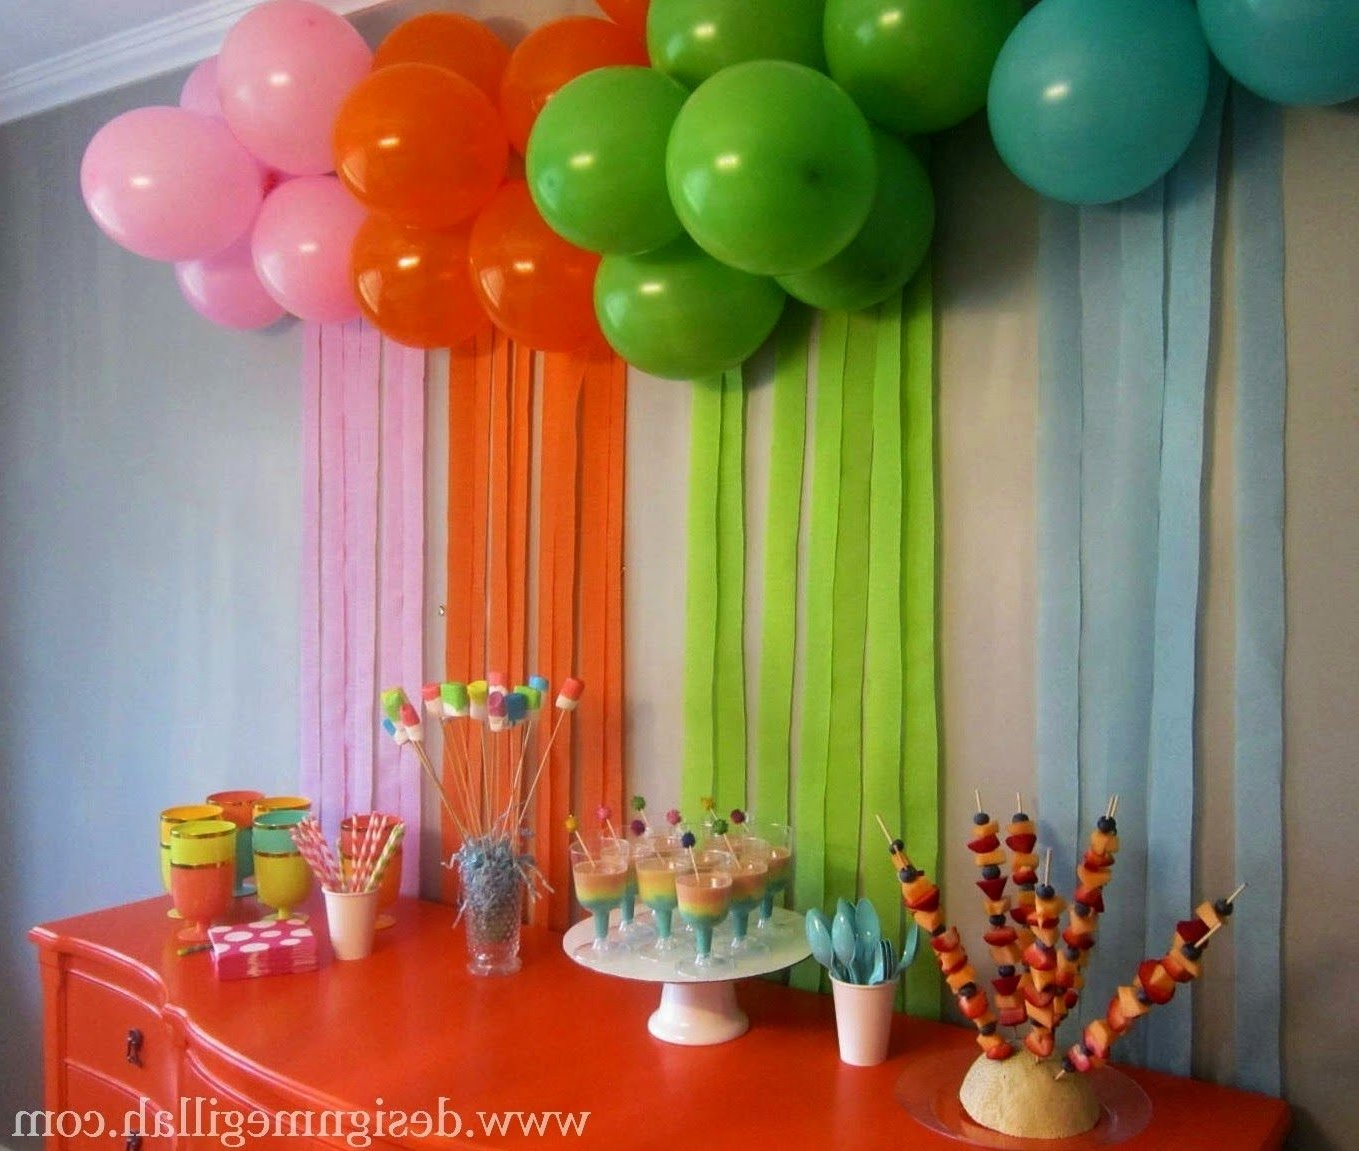 10 Beautiful Ideas For 3 Year Old Birthday Party 2019